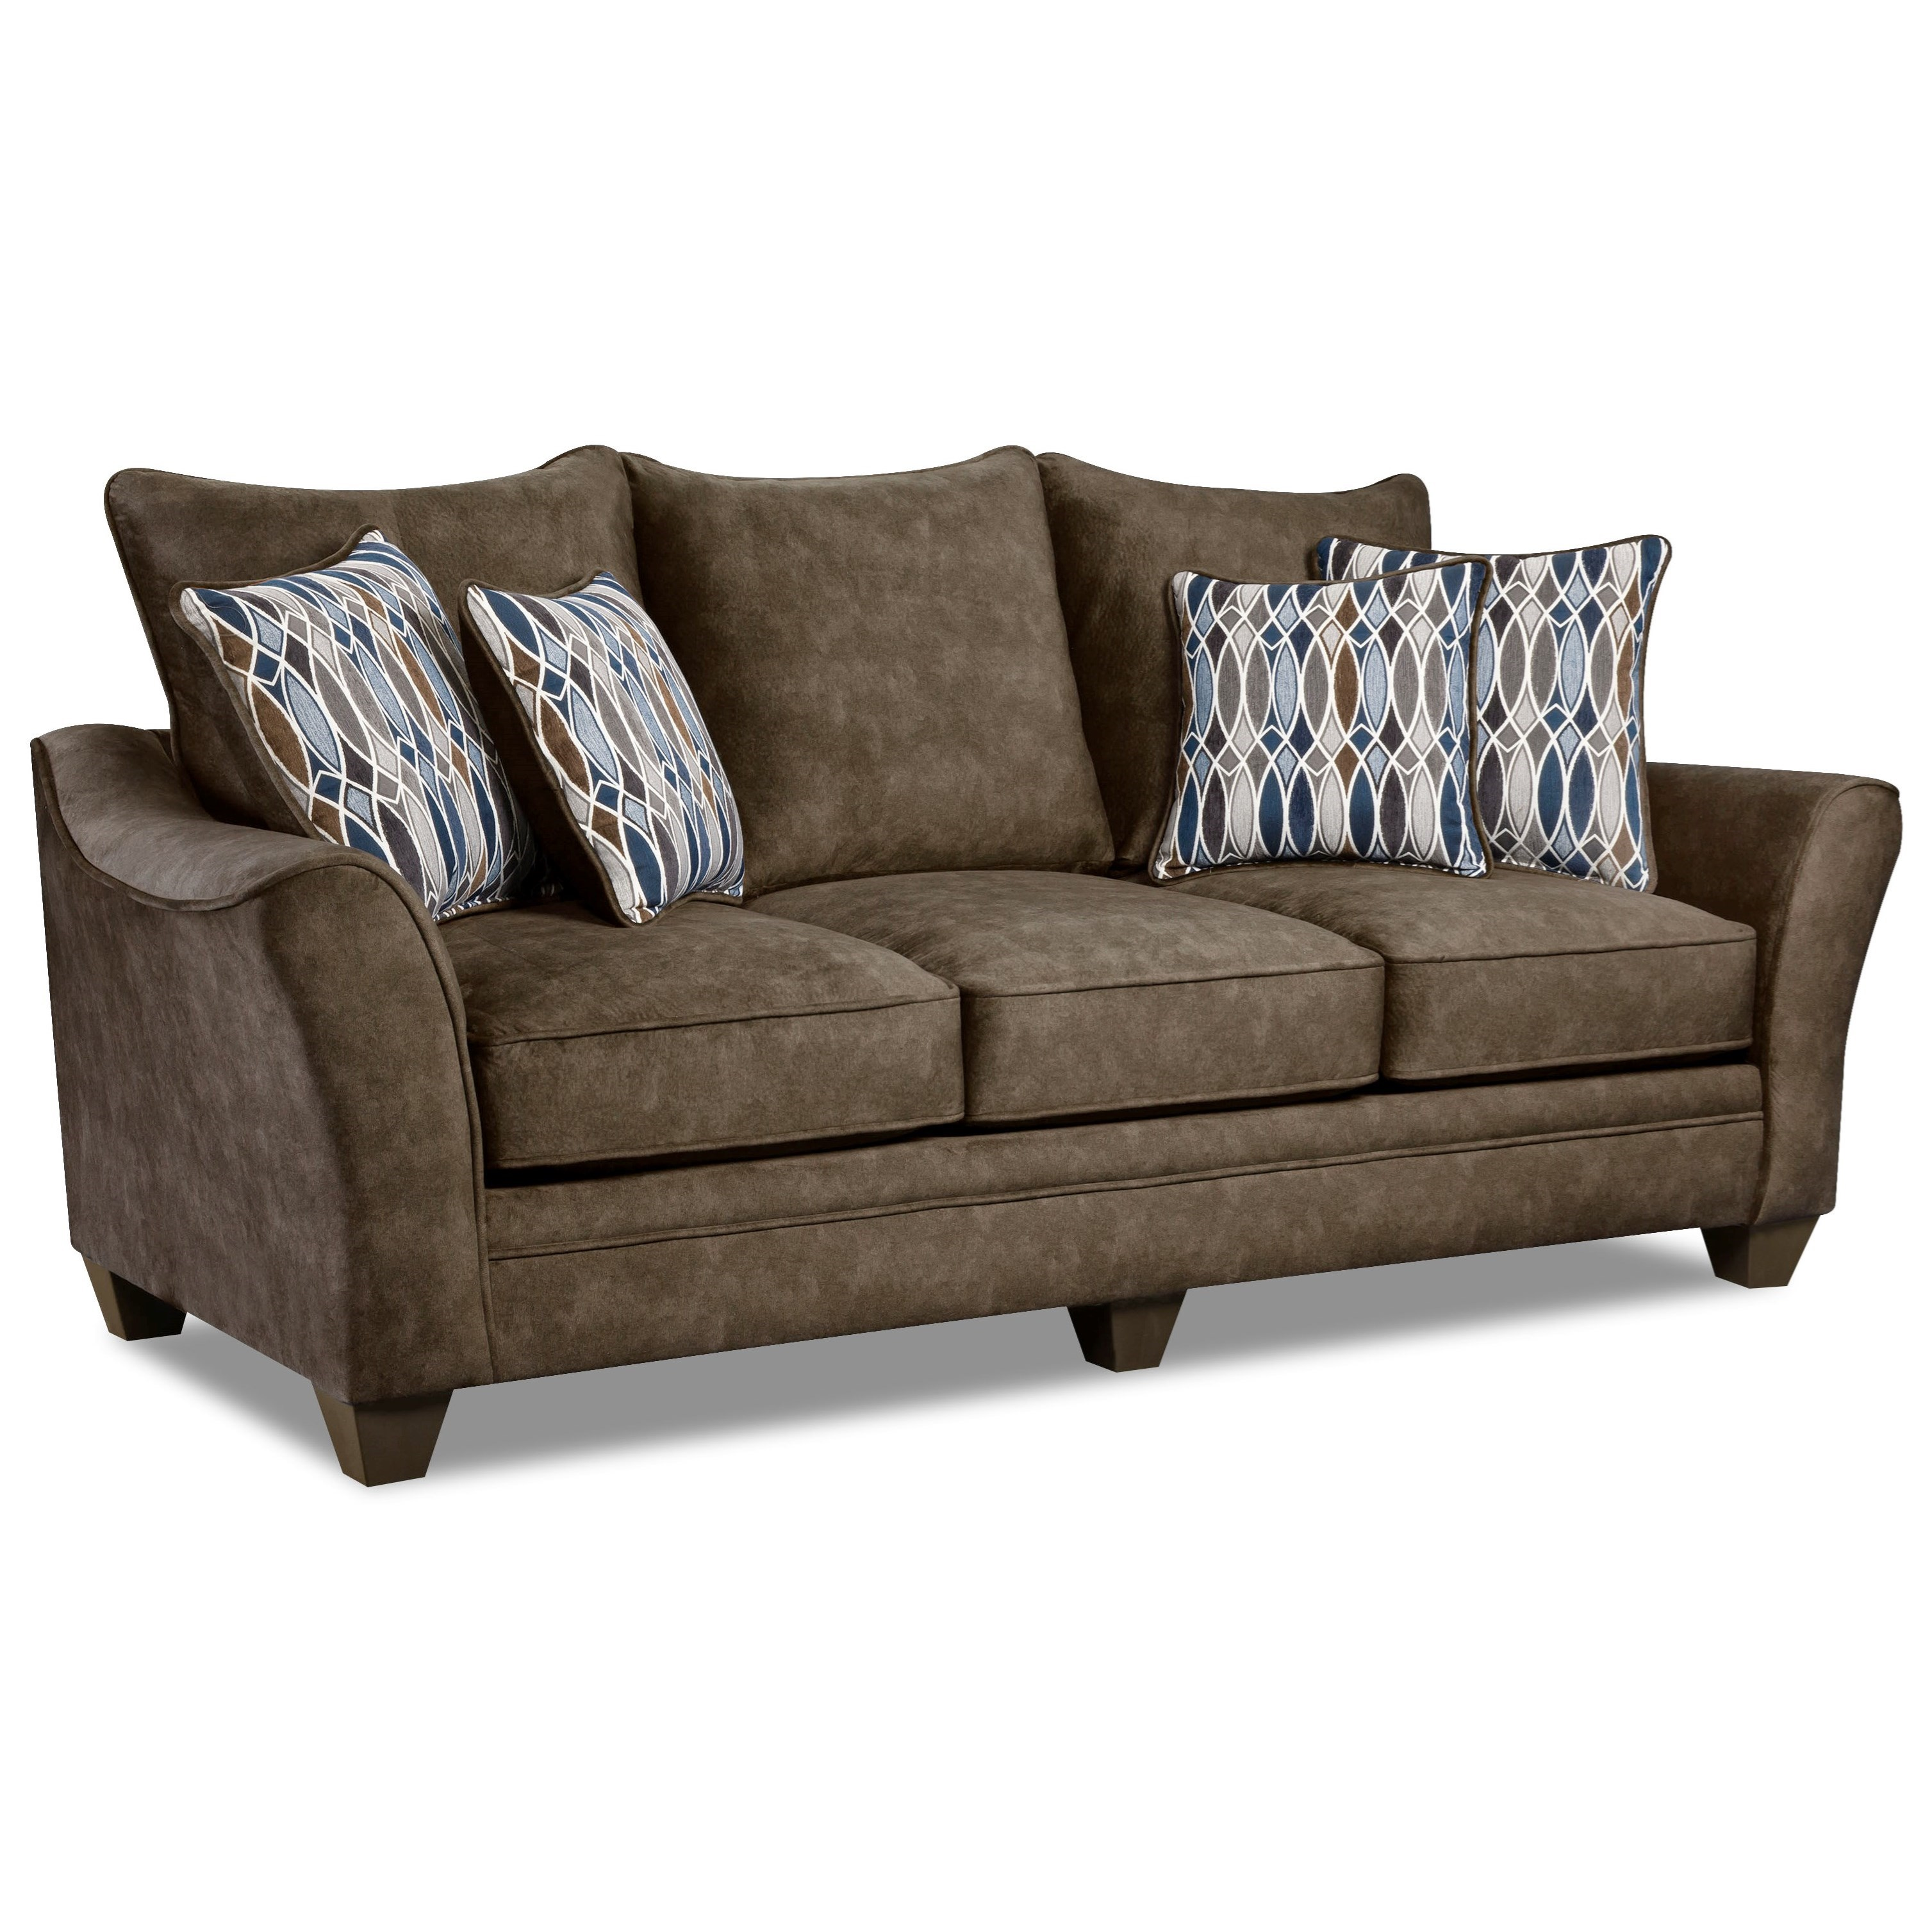 American Furniture 3850 3853 Athena Brown Elegant Sofa With Contemporary Style Great American